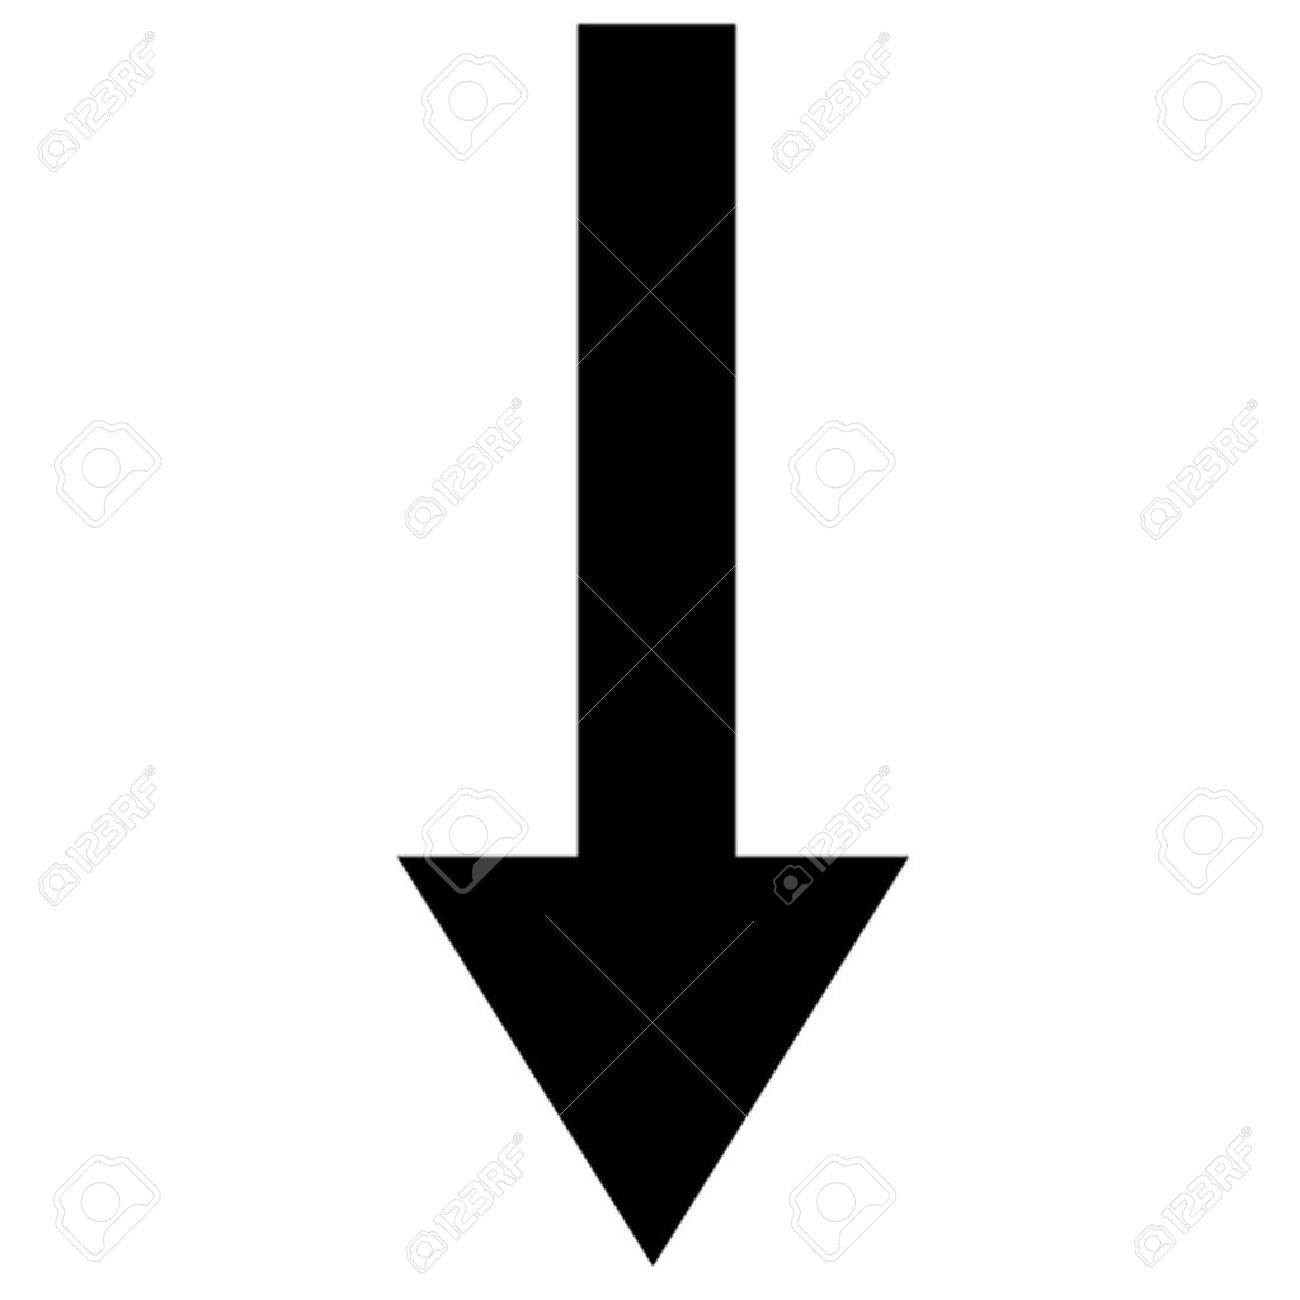 Arrow Pointing Down >> Arrow Pointing Down Royalty Free Cliparts Vectors And Stock